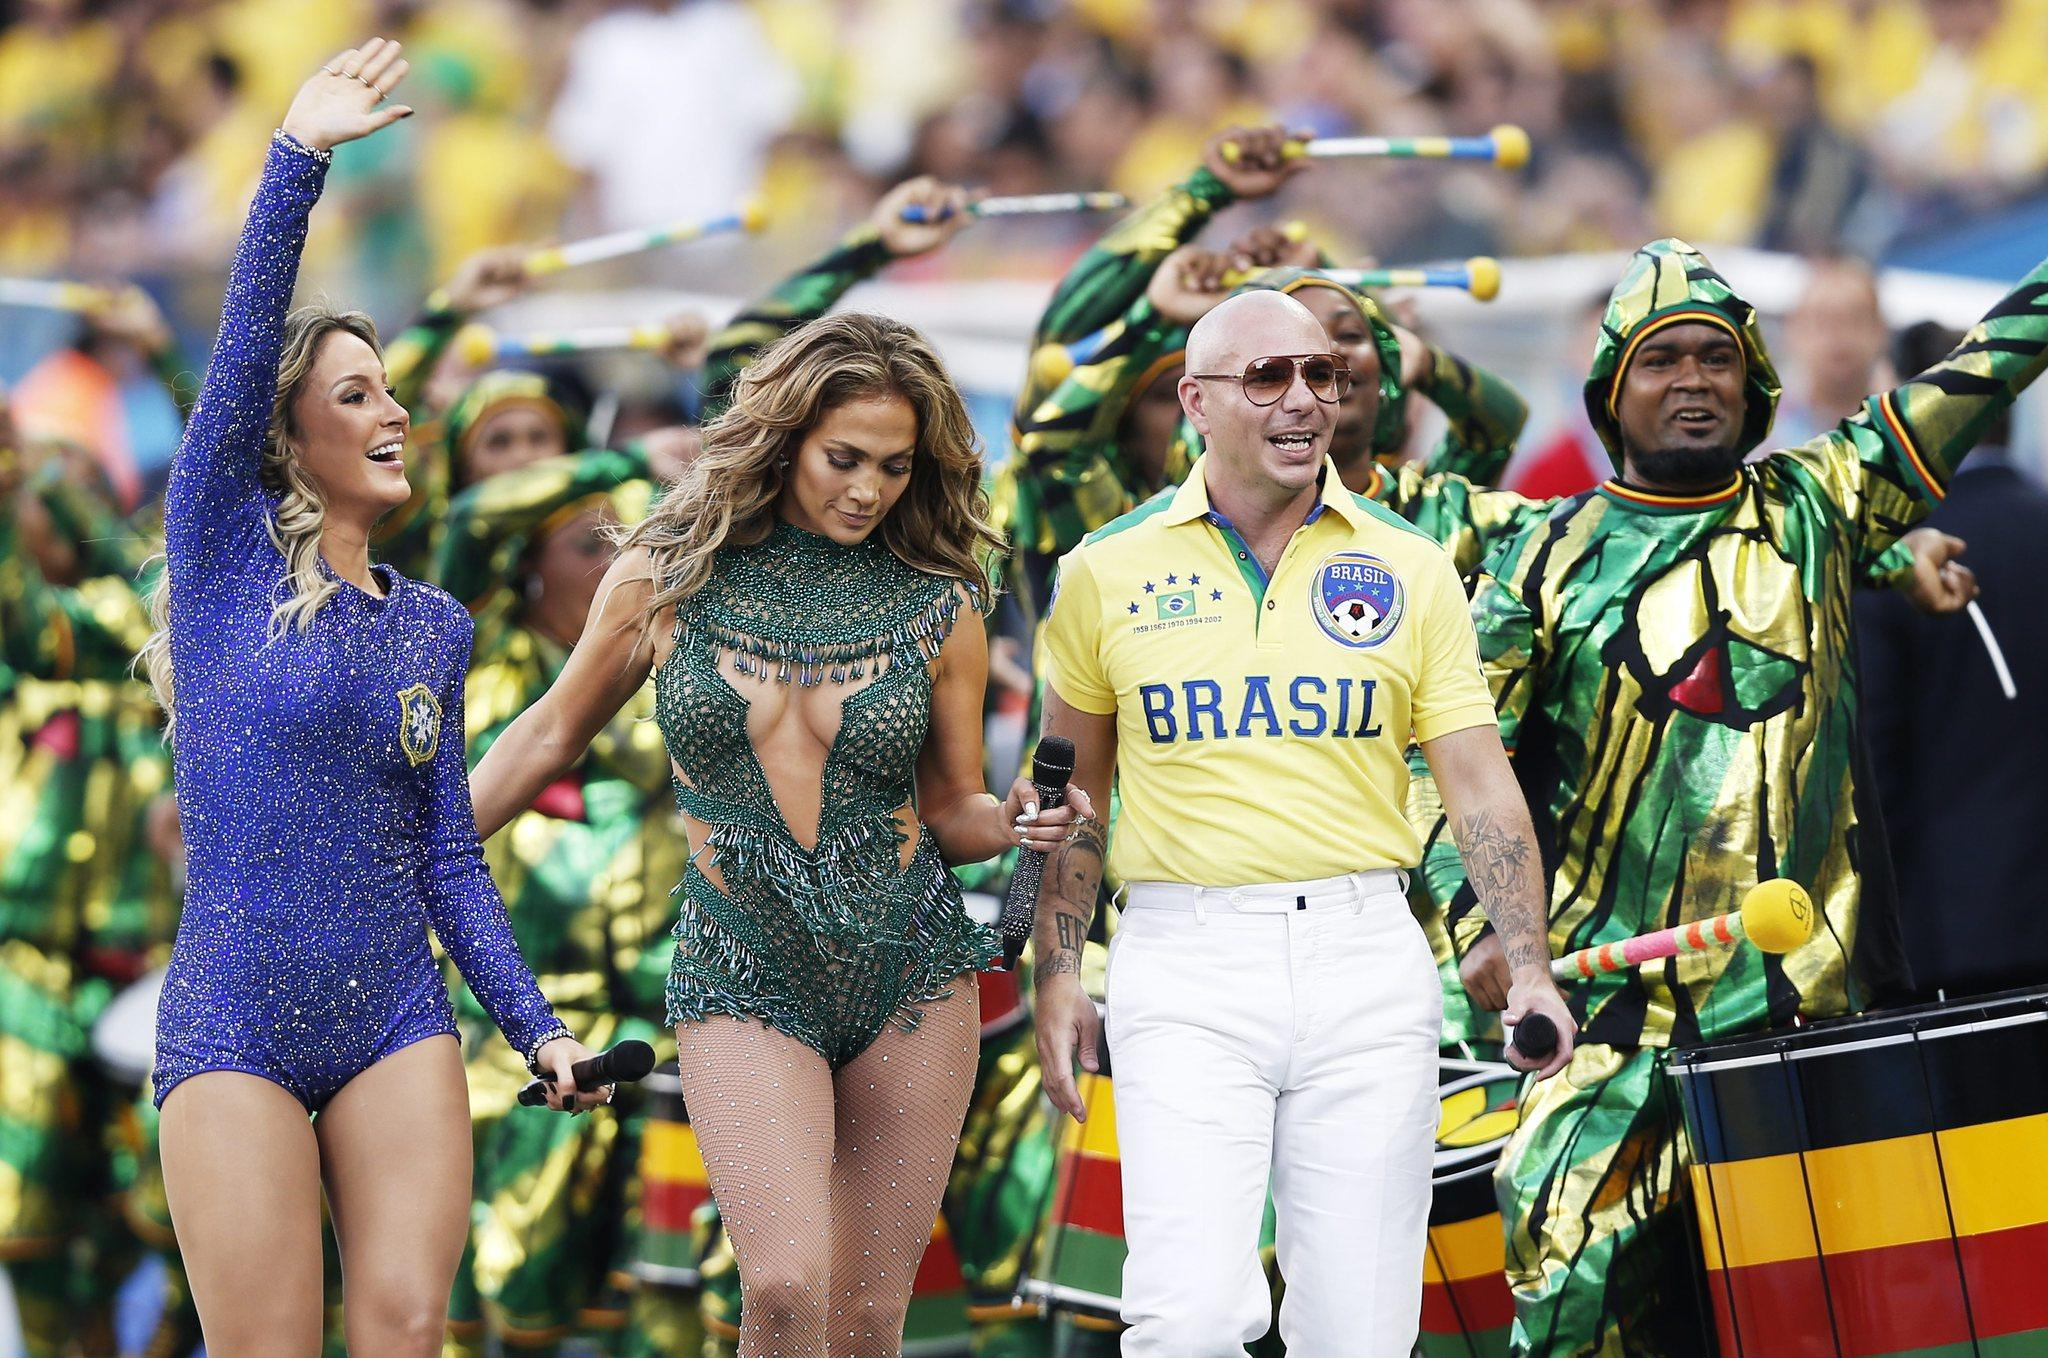 Rapper Pitbull performed with Jennifer Lopez before a World Cup match last month.